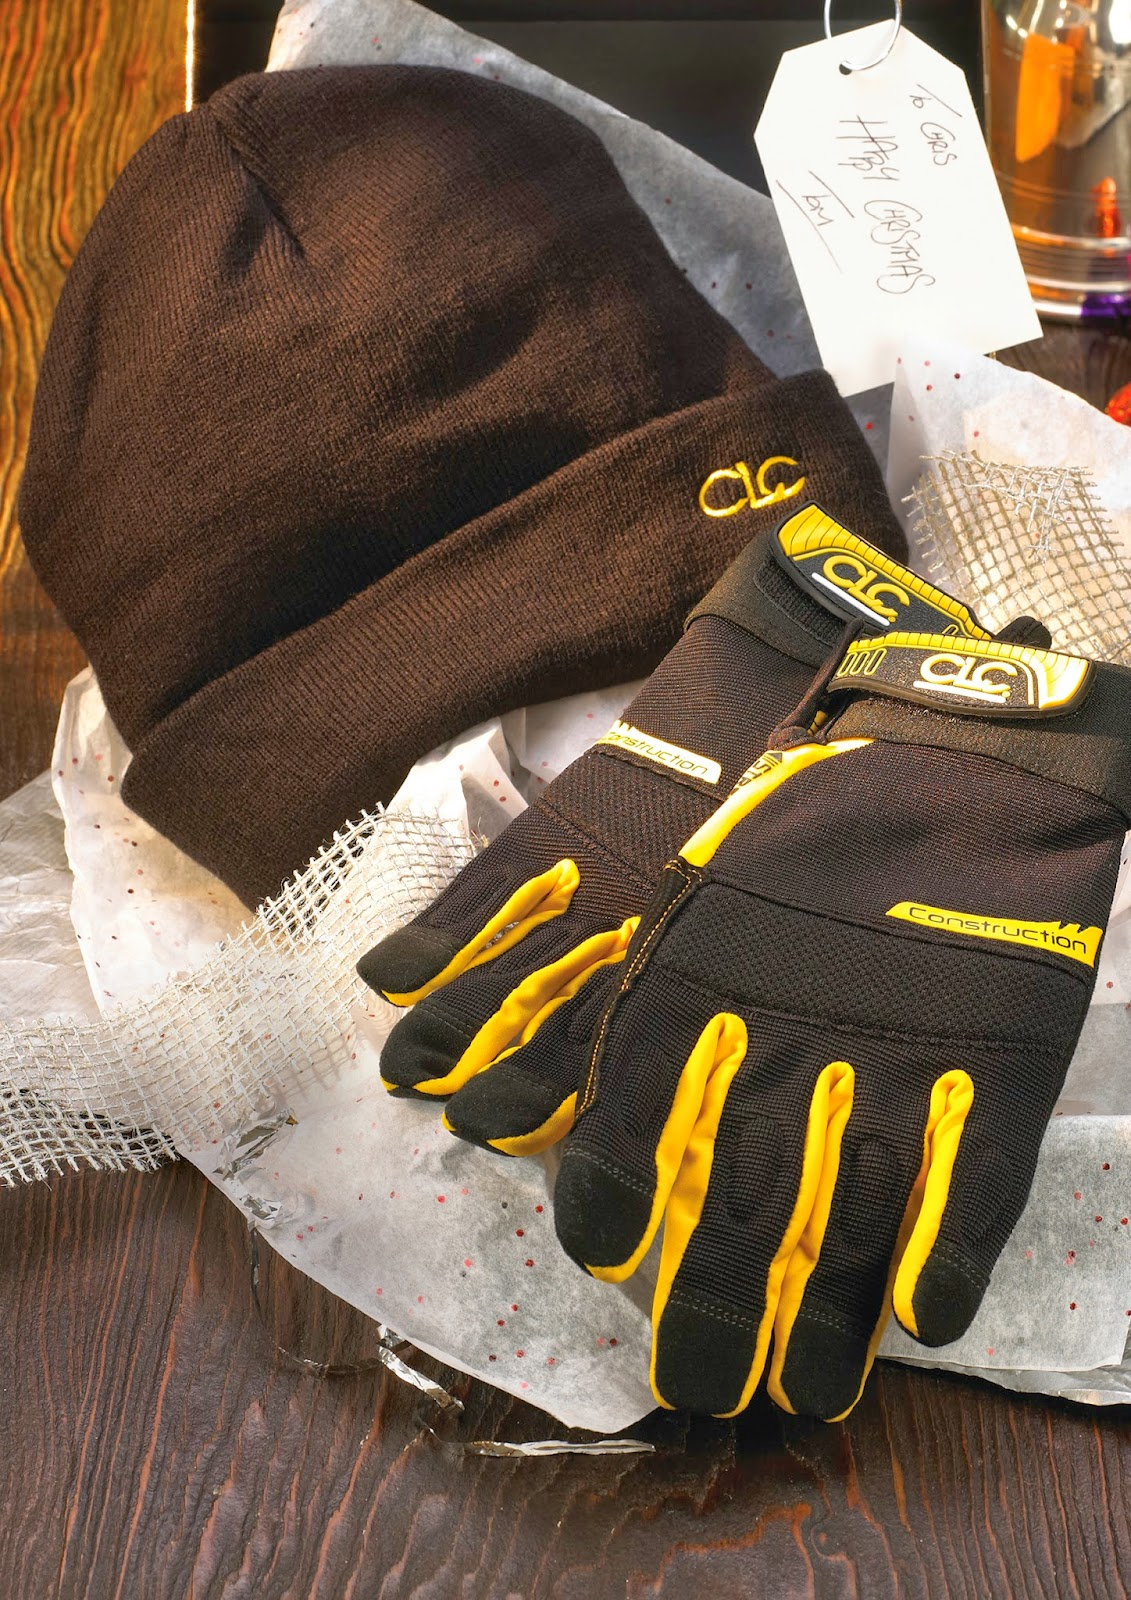 http://www.beesleyandfildes.co.uk/clc-gloves-with-beanie-ref-xms13gloves/